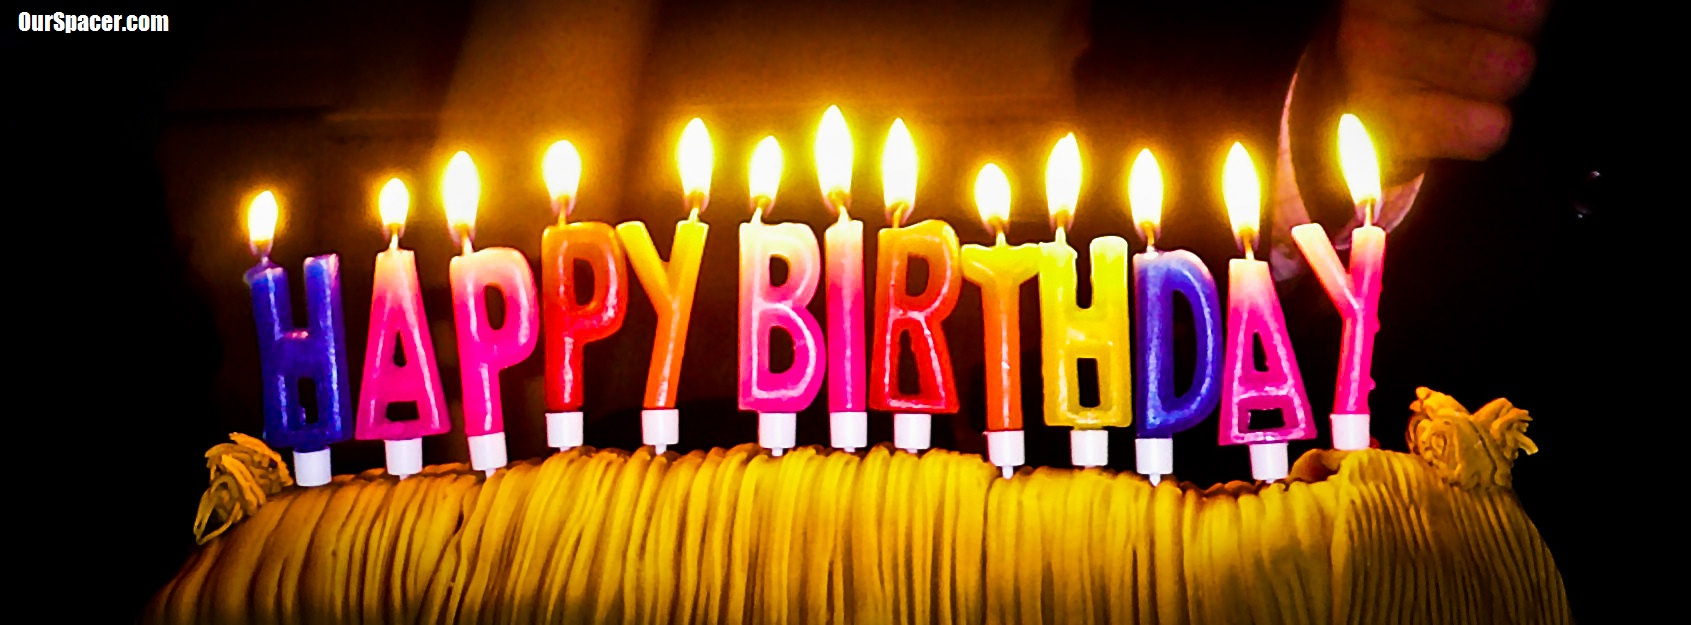 happy birthday letter candles myspace, friendster, facebook, and hi5 comment graphics